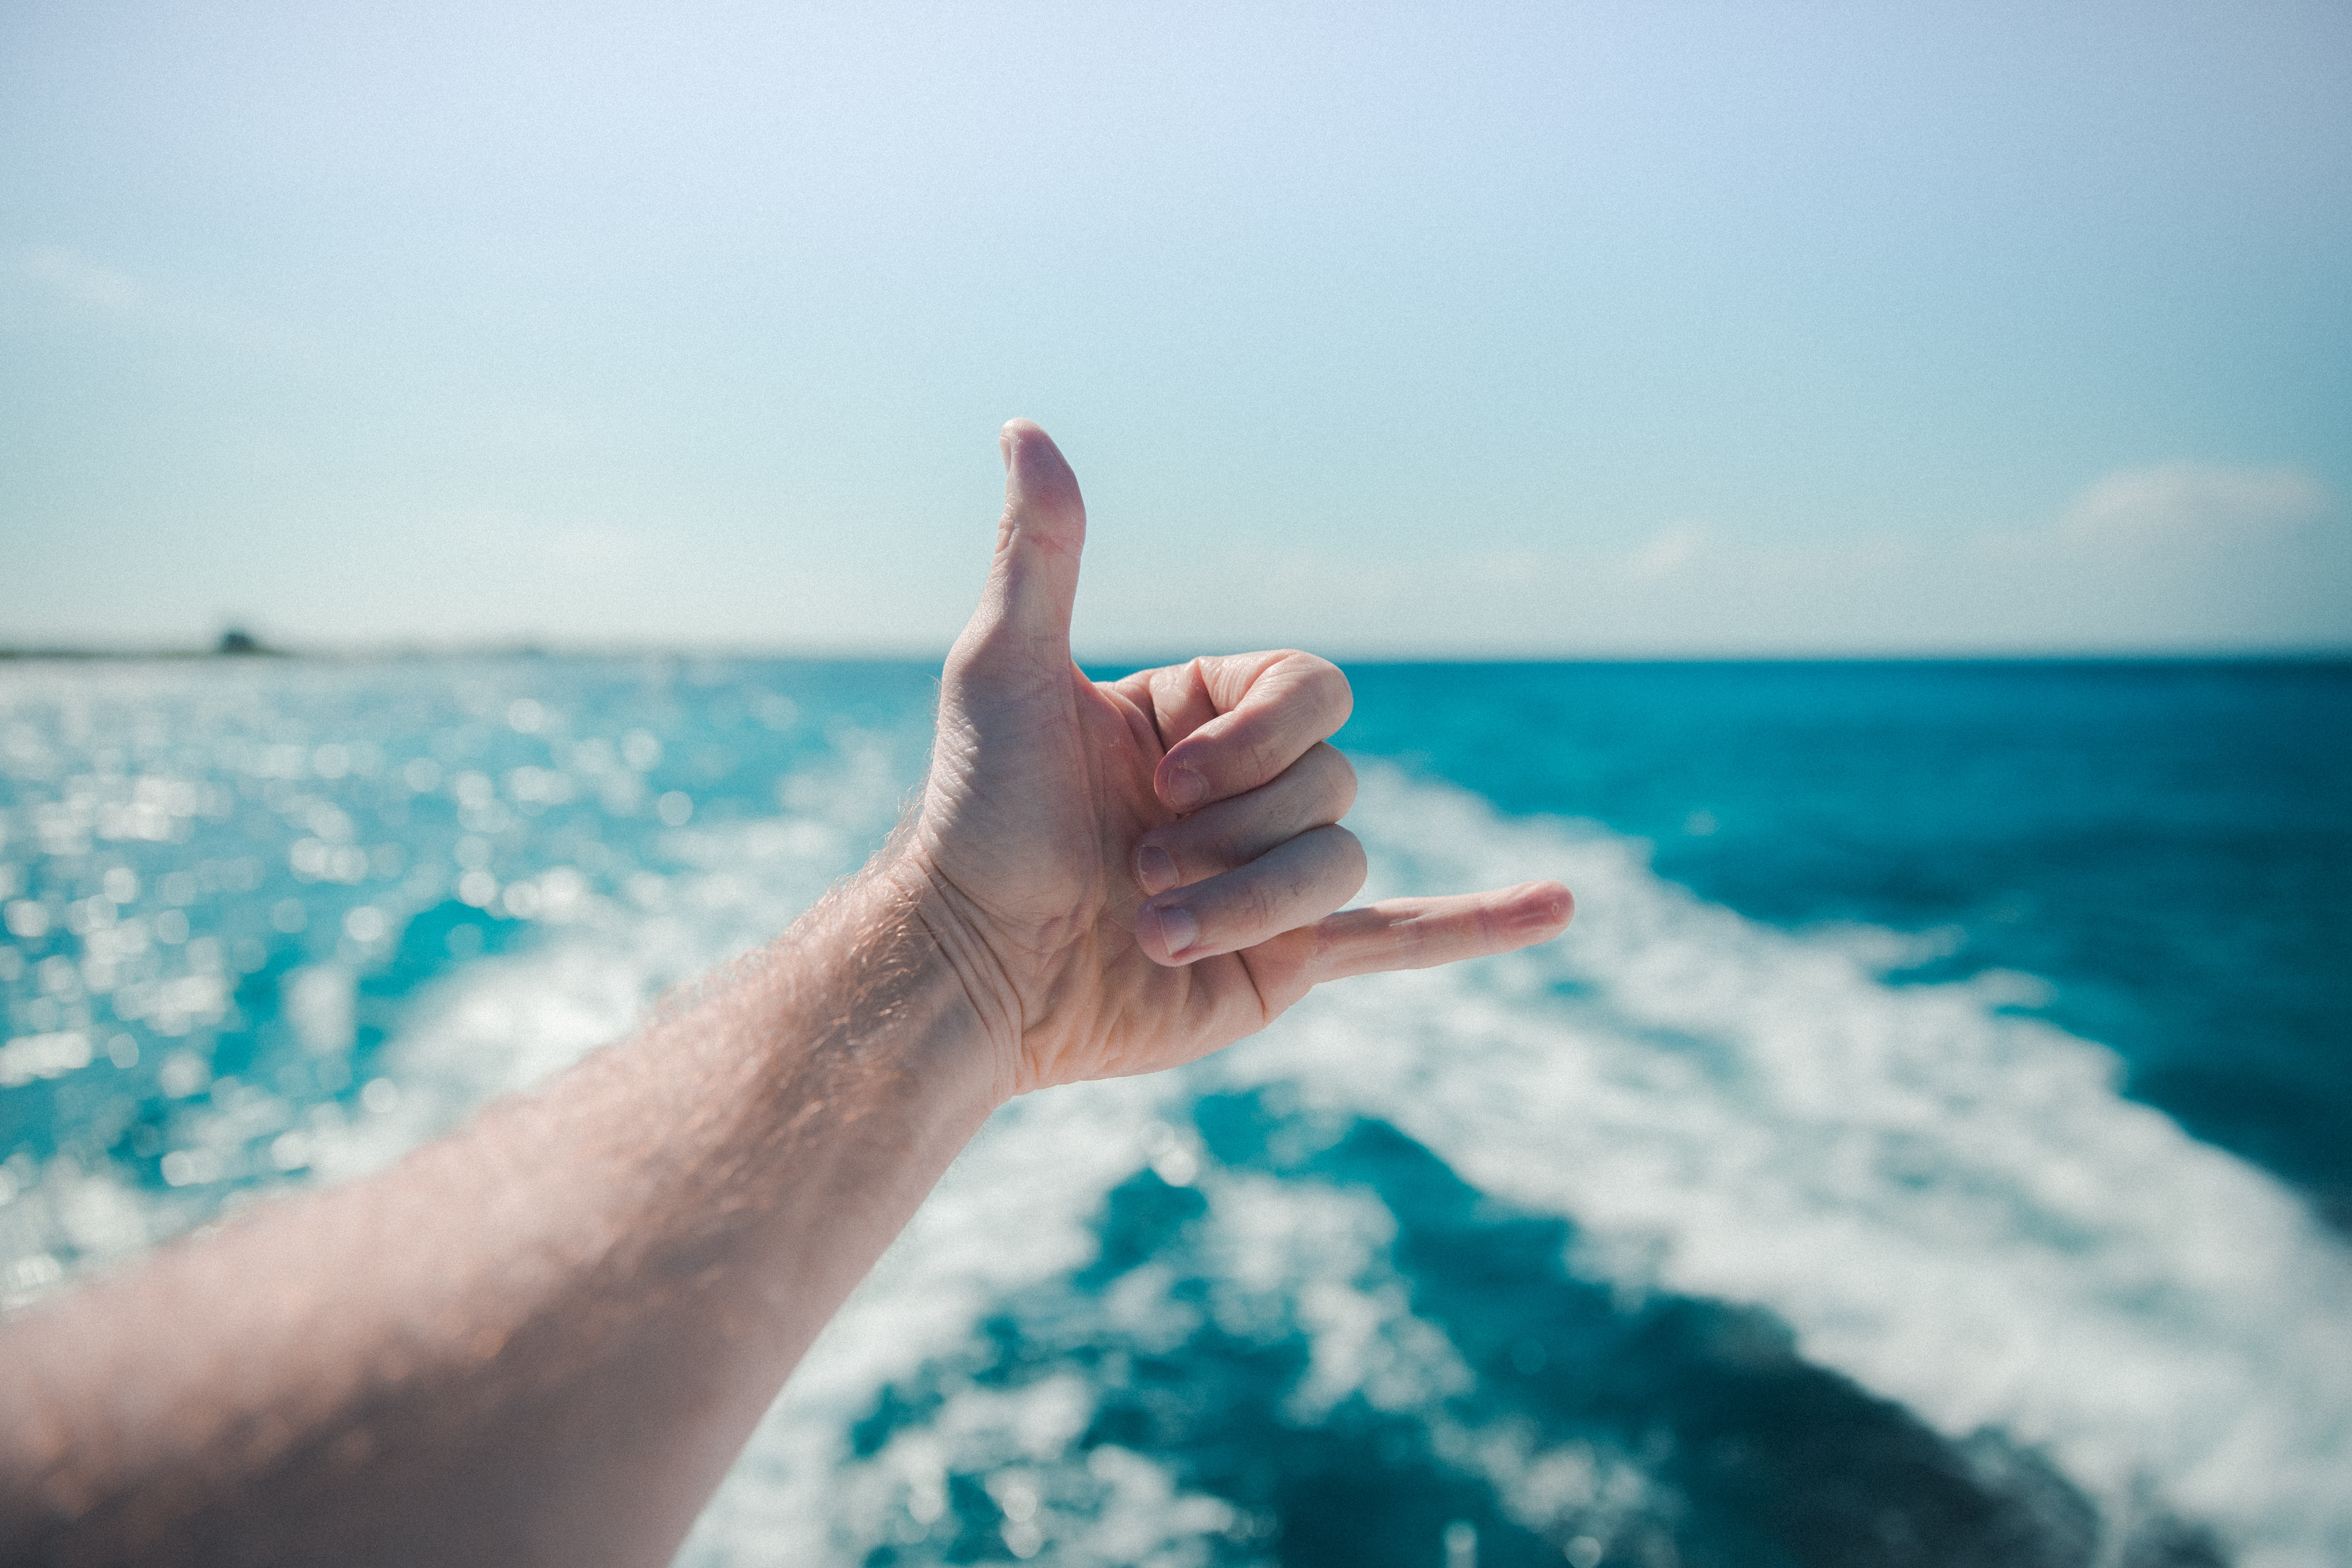 """An outstretched hand making a """"telephone"""" gesture over the white wake left in the sea by the boat"""